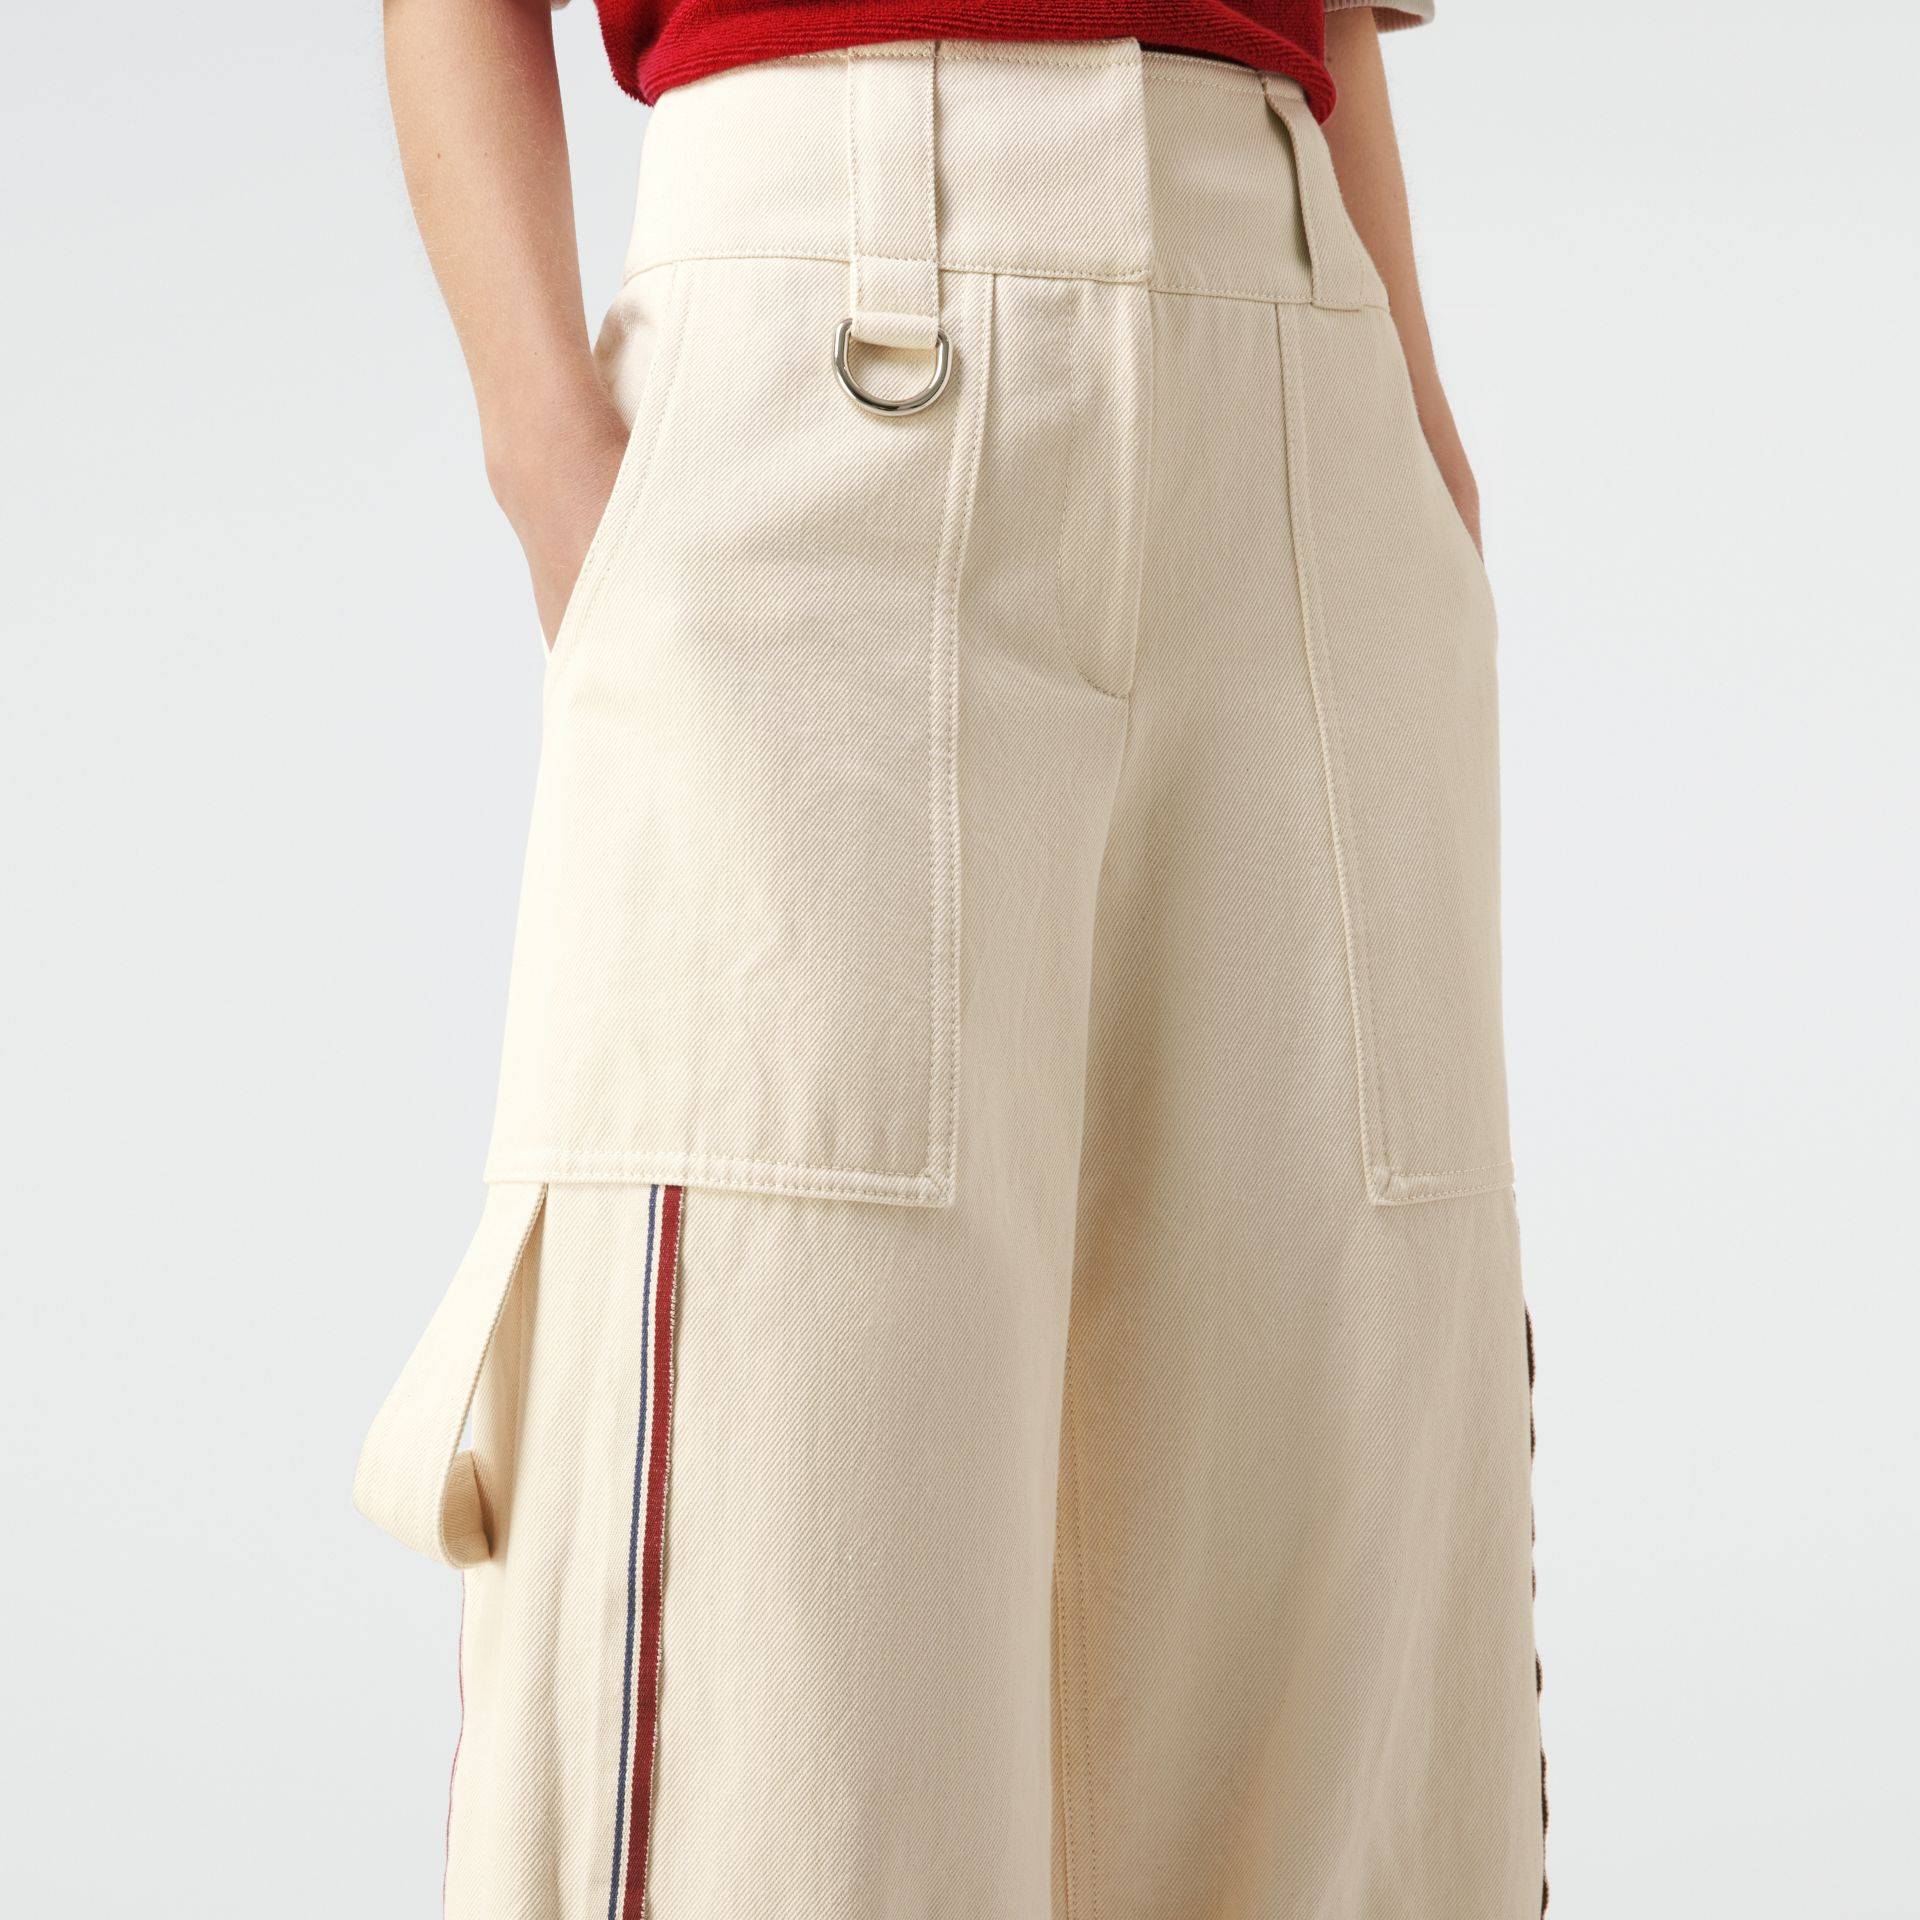 Pantalon ample 7/8 en coton à rayures (Blanc Naturel) - Femme | Burberry - photo de la galerie 1